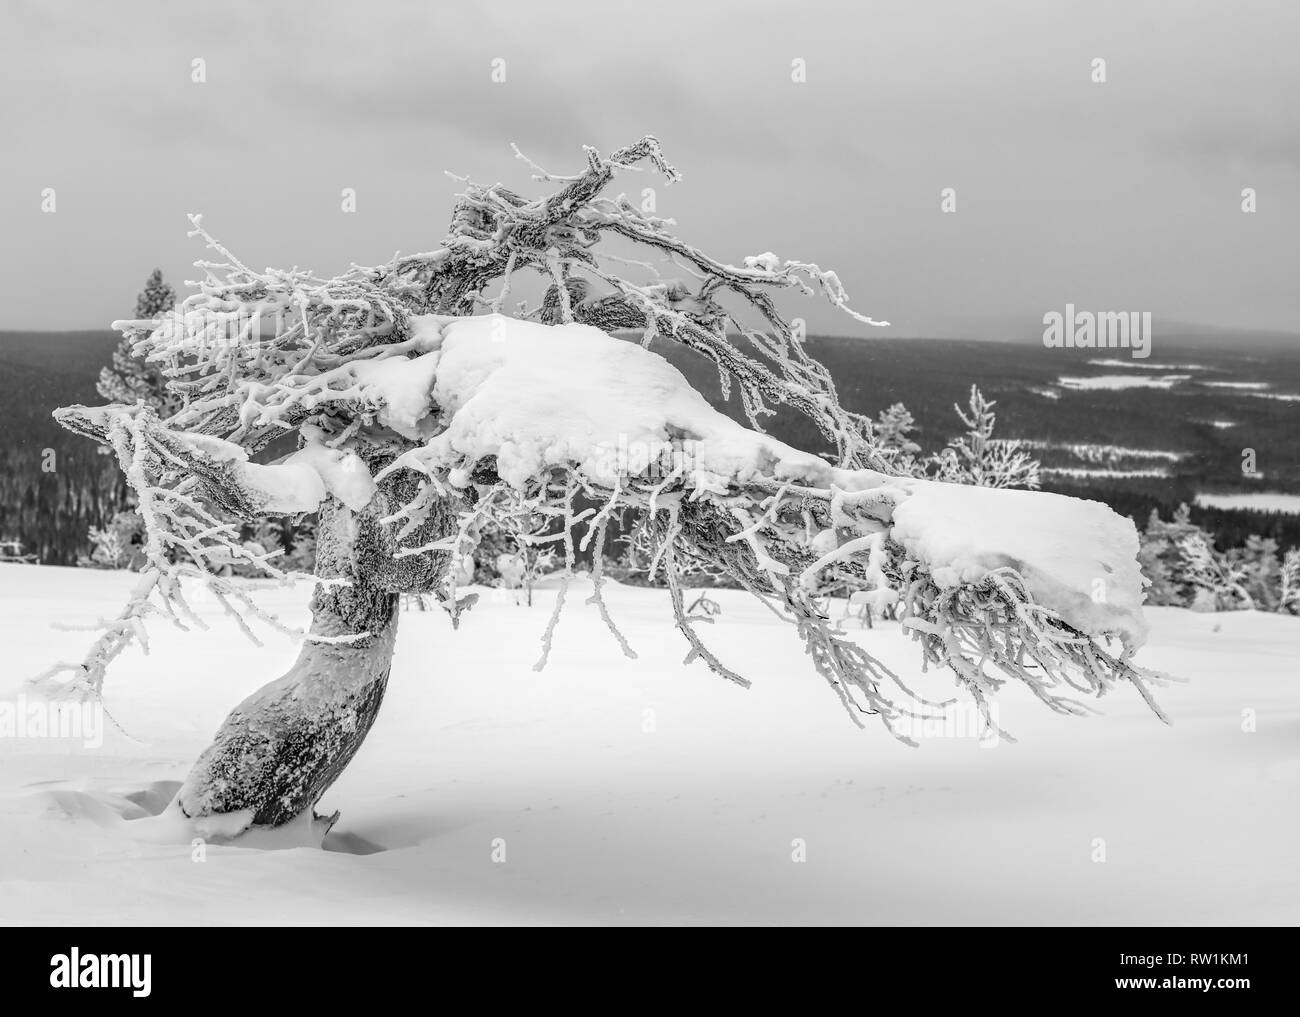 Icy and snowy twisted pine tree on top of a fell in Lapland, Finland on dramatic overcast winter afternoon - Stock Image